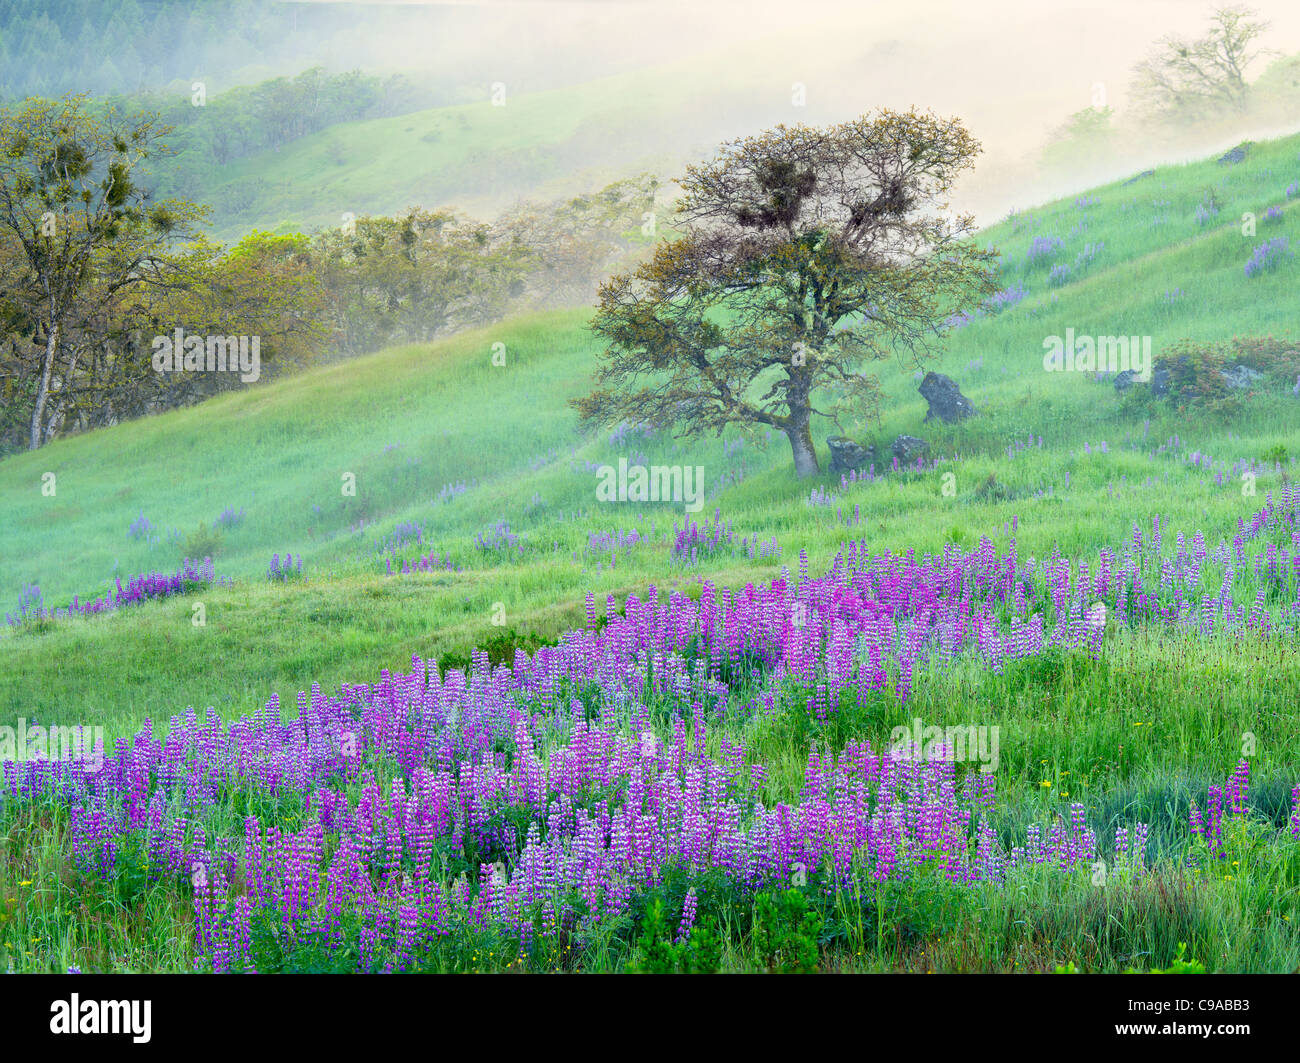 Prairie with lupines, fog and oak tree. Redwood National Park, California - Stock Image